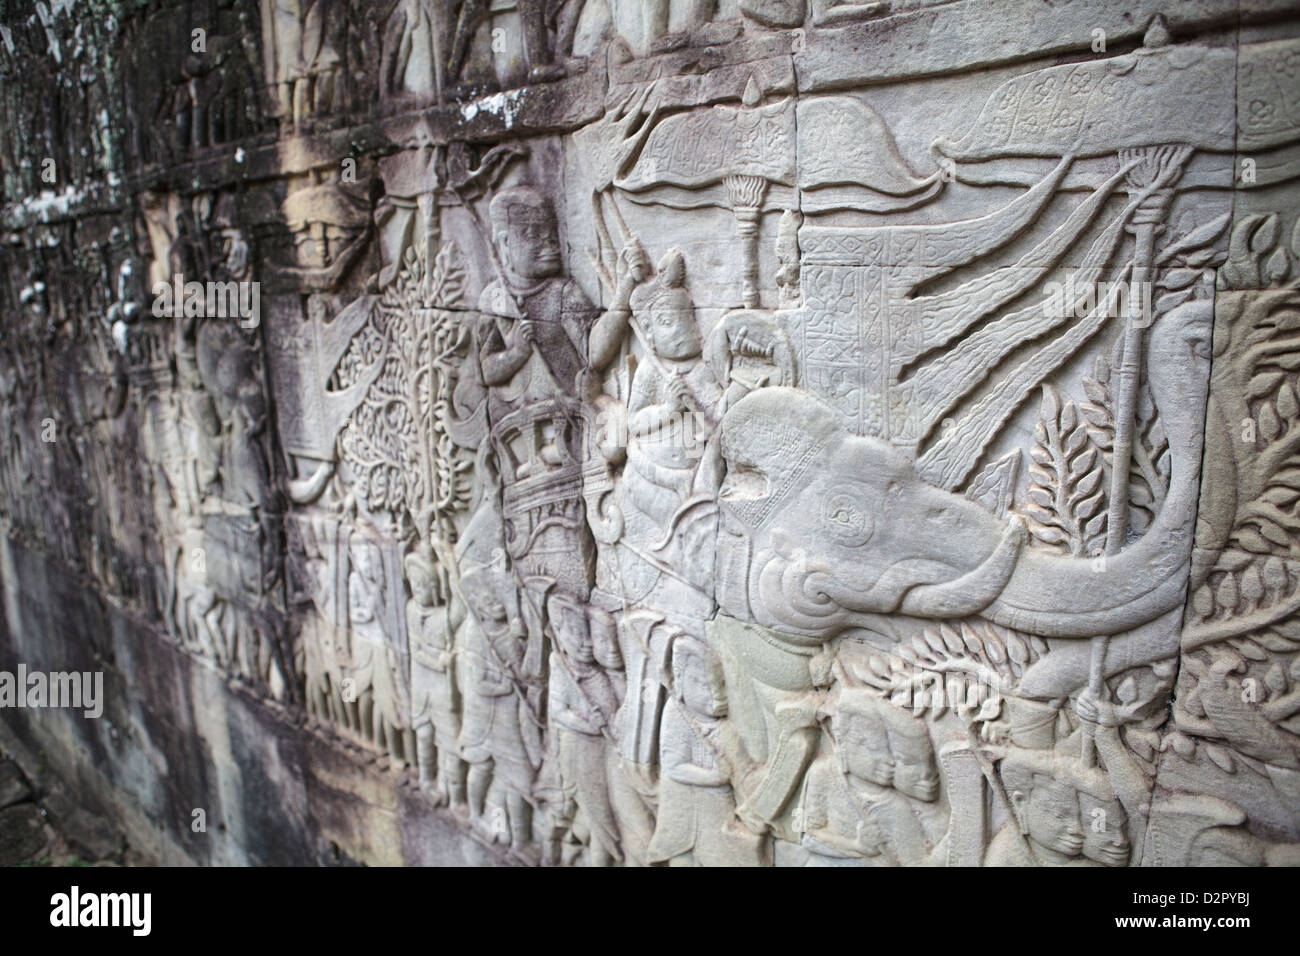 Carvings in stone depicting a king riding an elephant, Angkor Wat, Siem Reap, Cambodia, Indochina - Stock Image